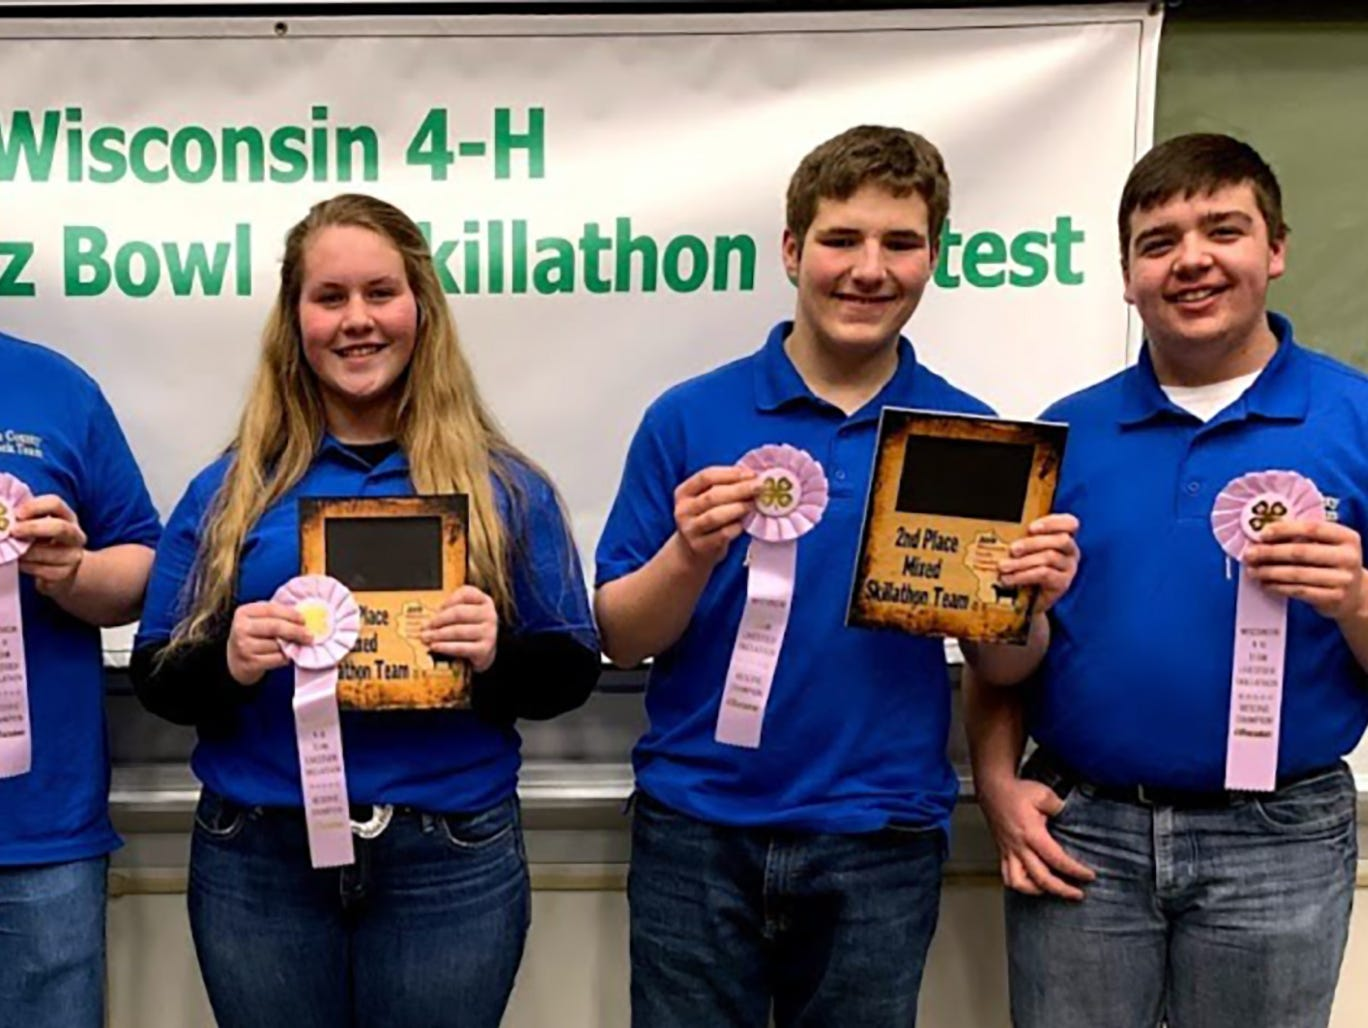 Jackson County team members (from left) Trent Laufenberg, Wyatt Berg, Grace Kling, Kaden Moseley, Austin Laufenberg took second place in the Mixed Skillathon.